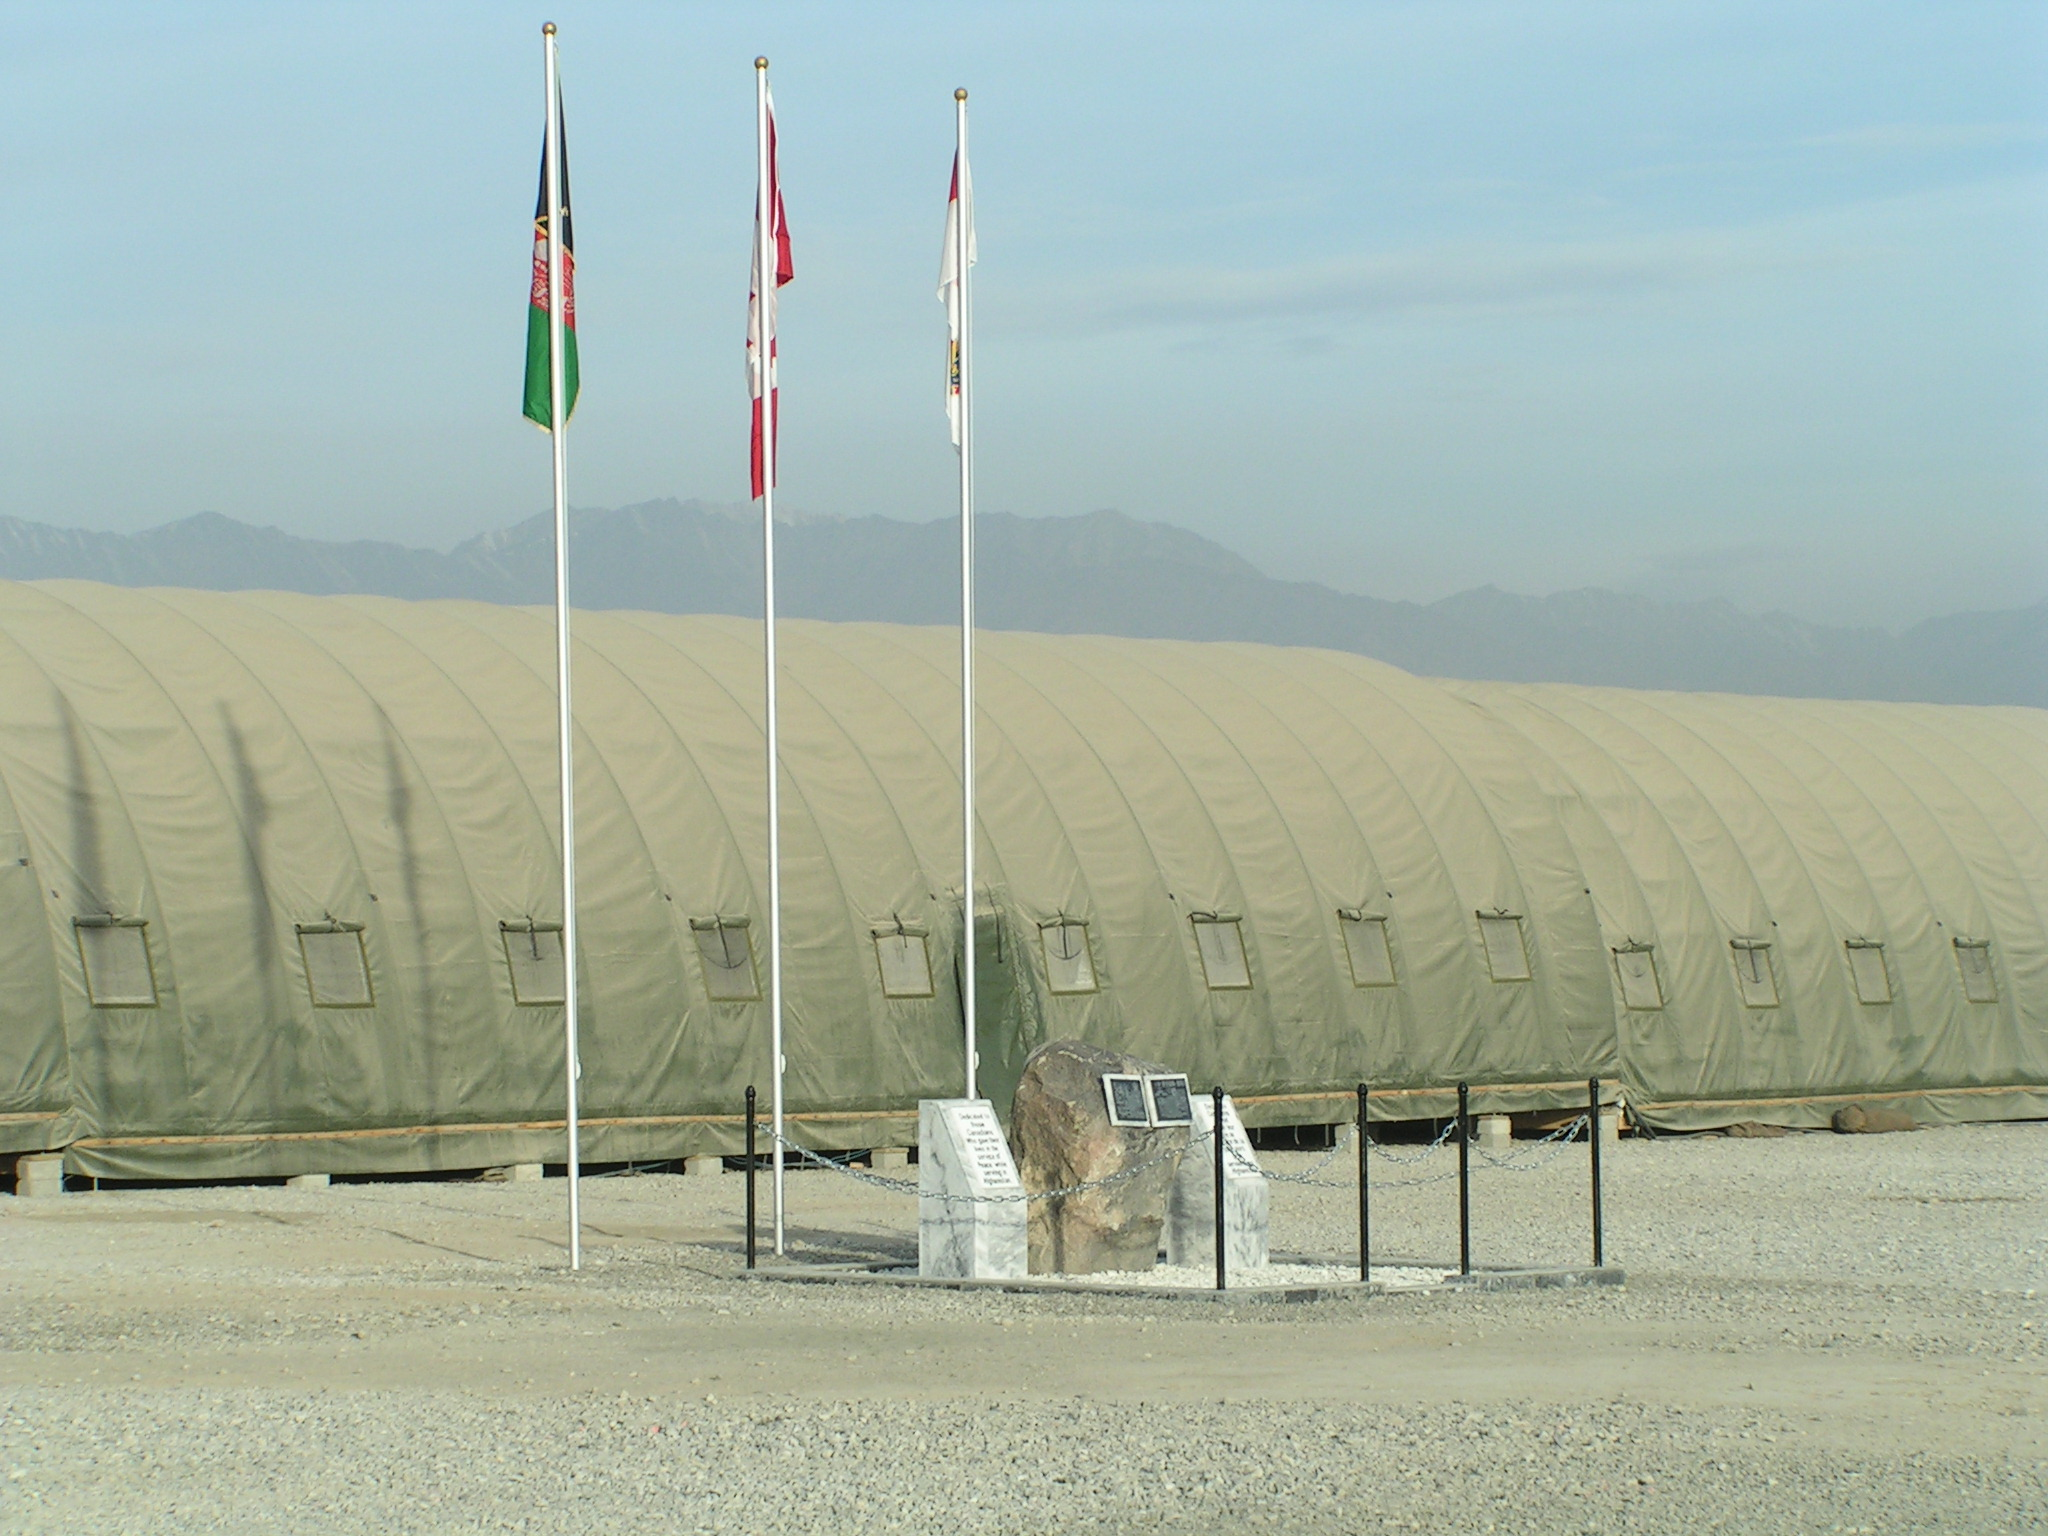 The cenotaph erected honouring those Canadians lost on Afghani soil